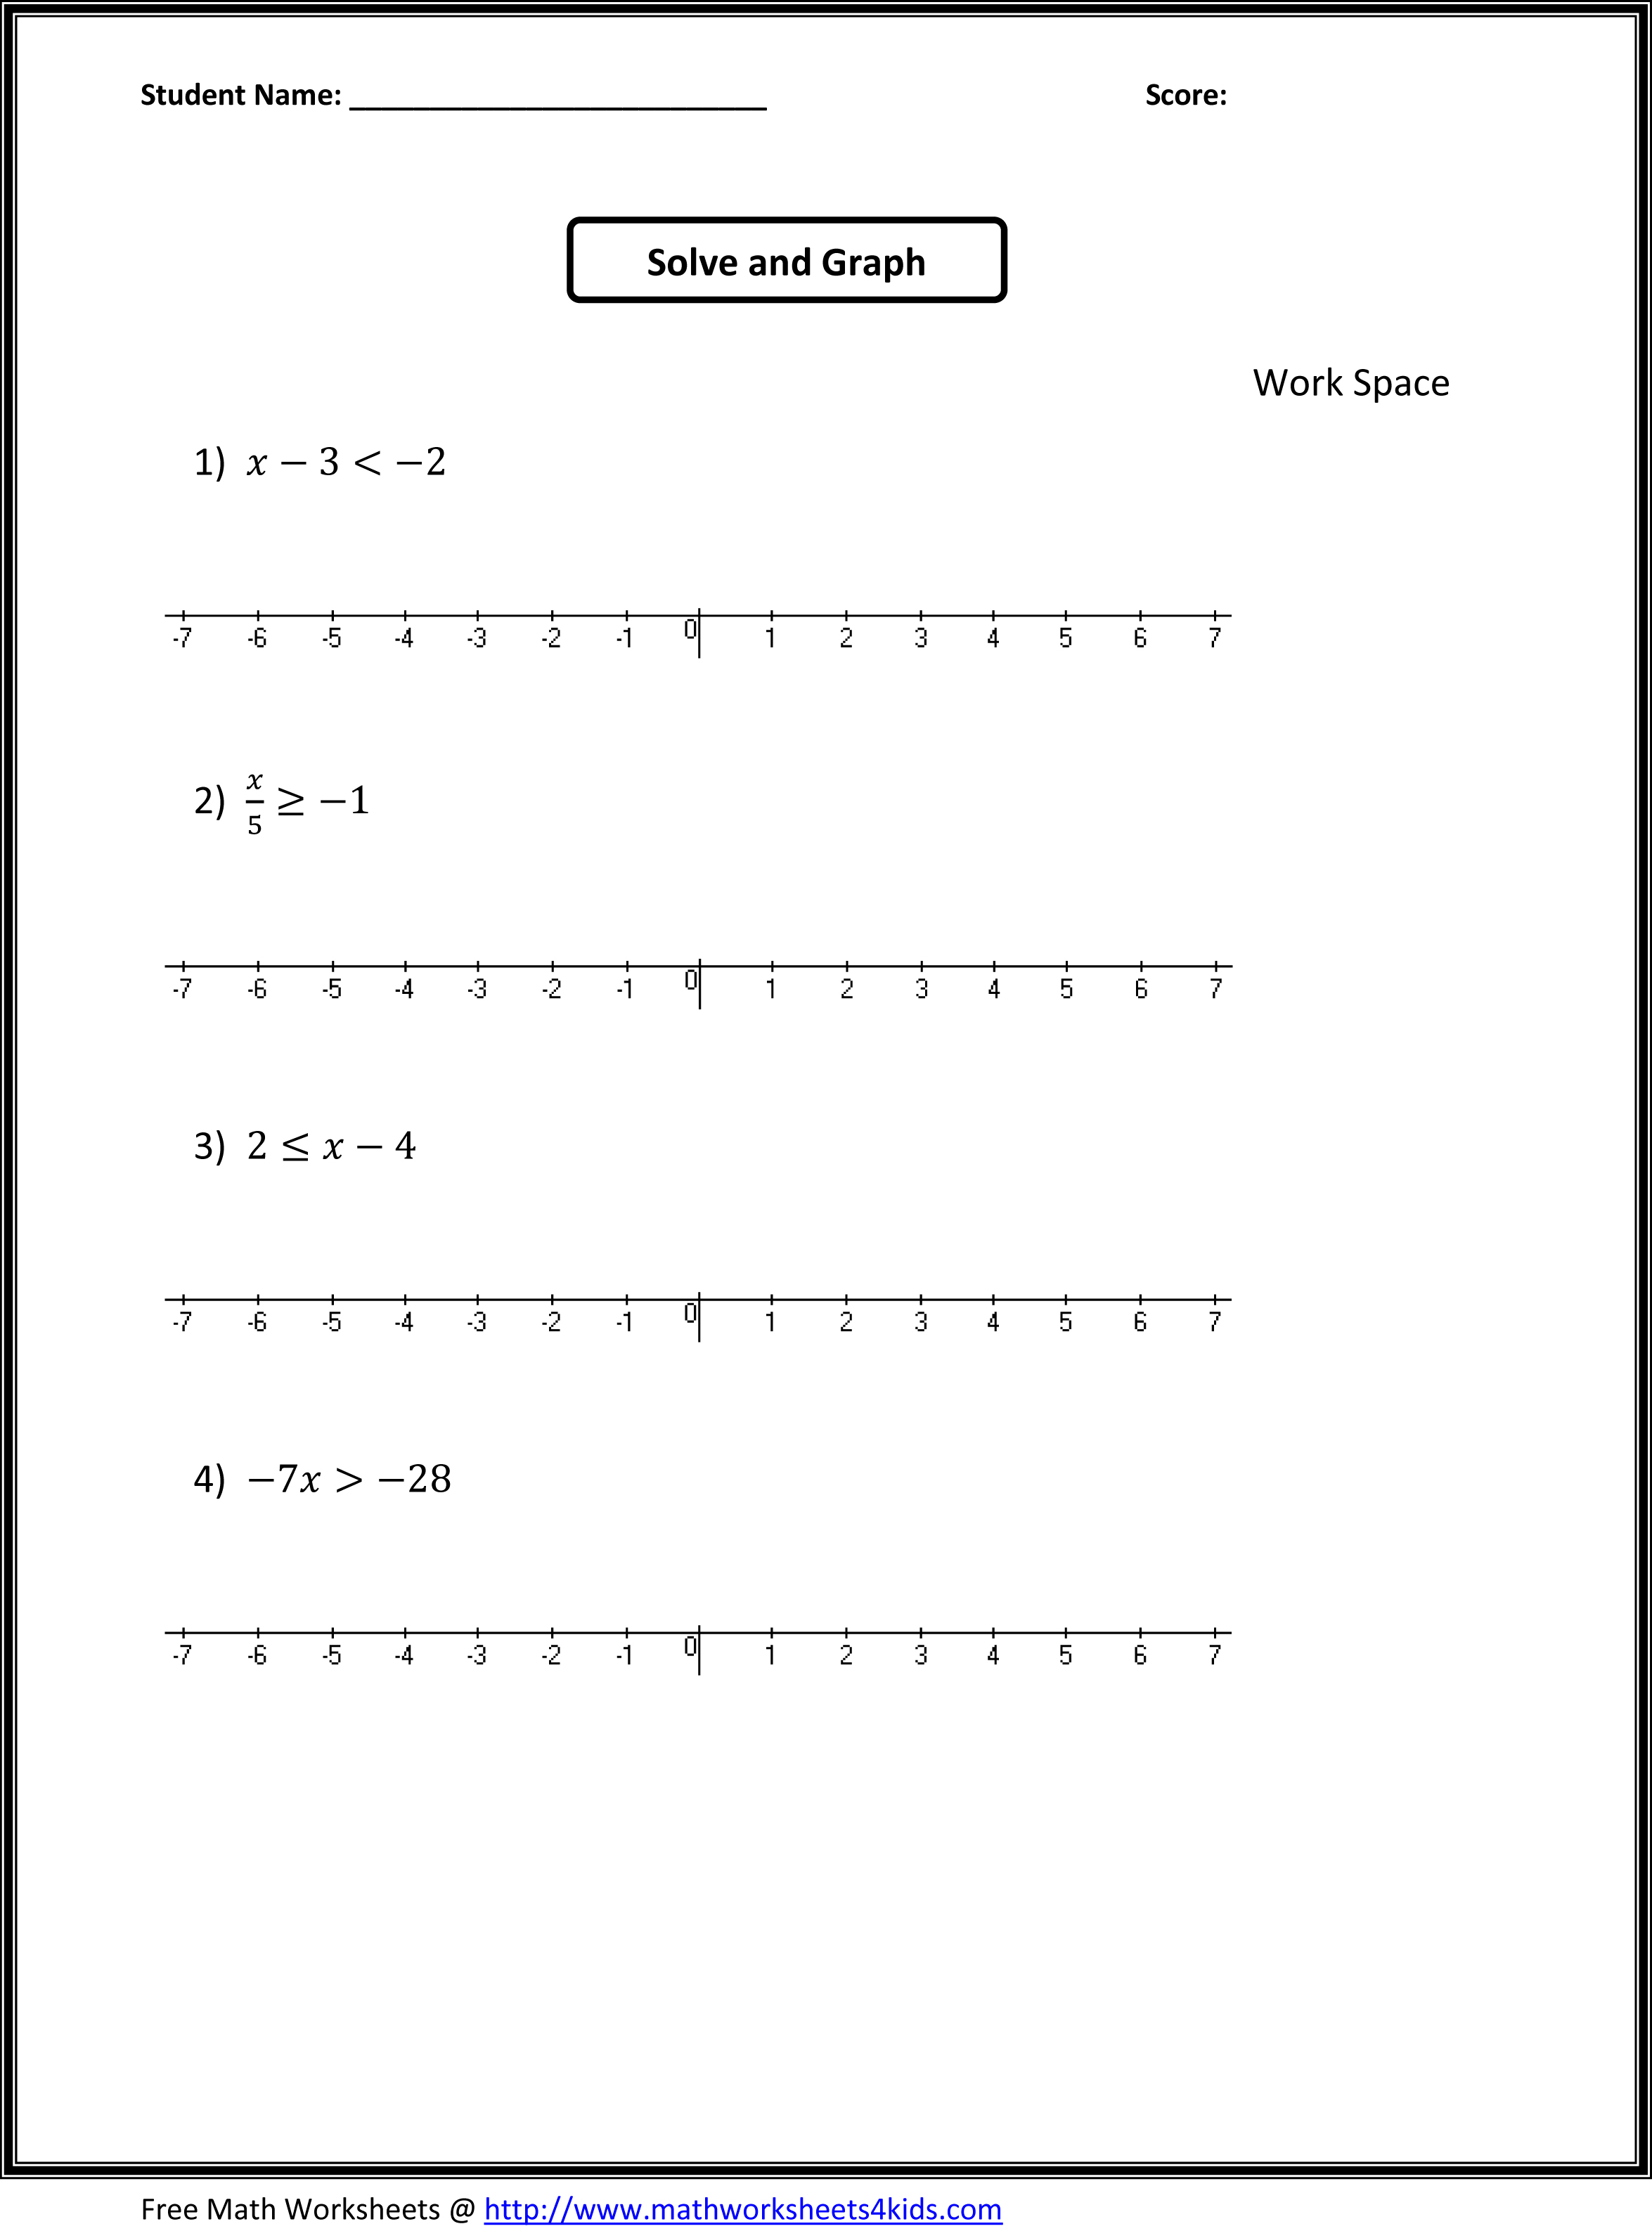 math worksheet : graphing calculator worksheets 8th grade  worksheets : Free Math Worksheets 8th Grade